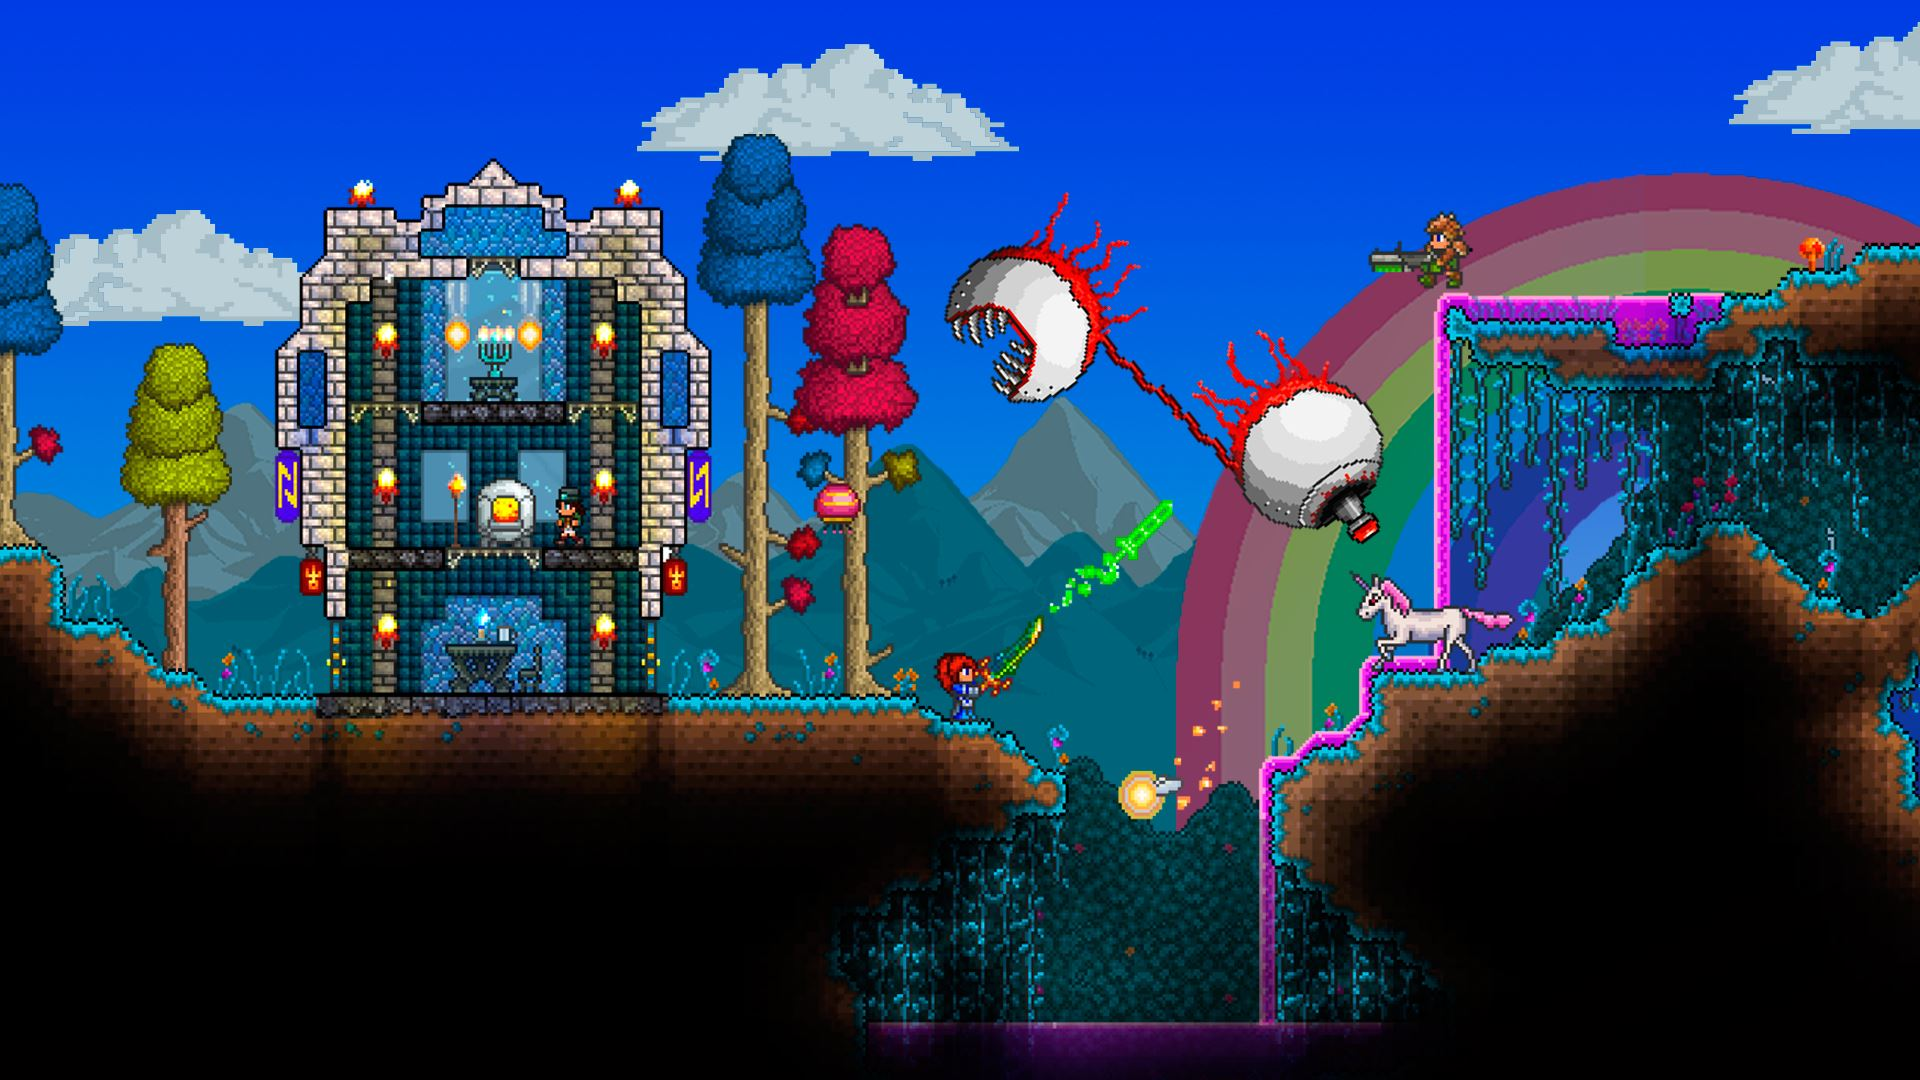 Modojo | Take a Look at Terraria for Nintendo 3DS in This New Trailer